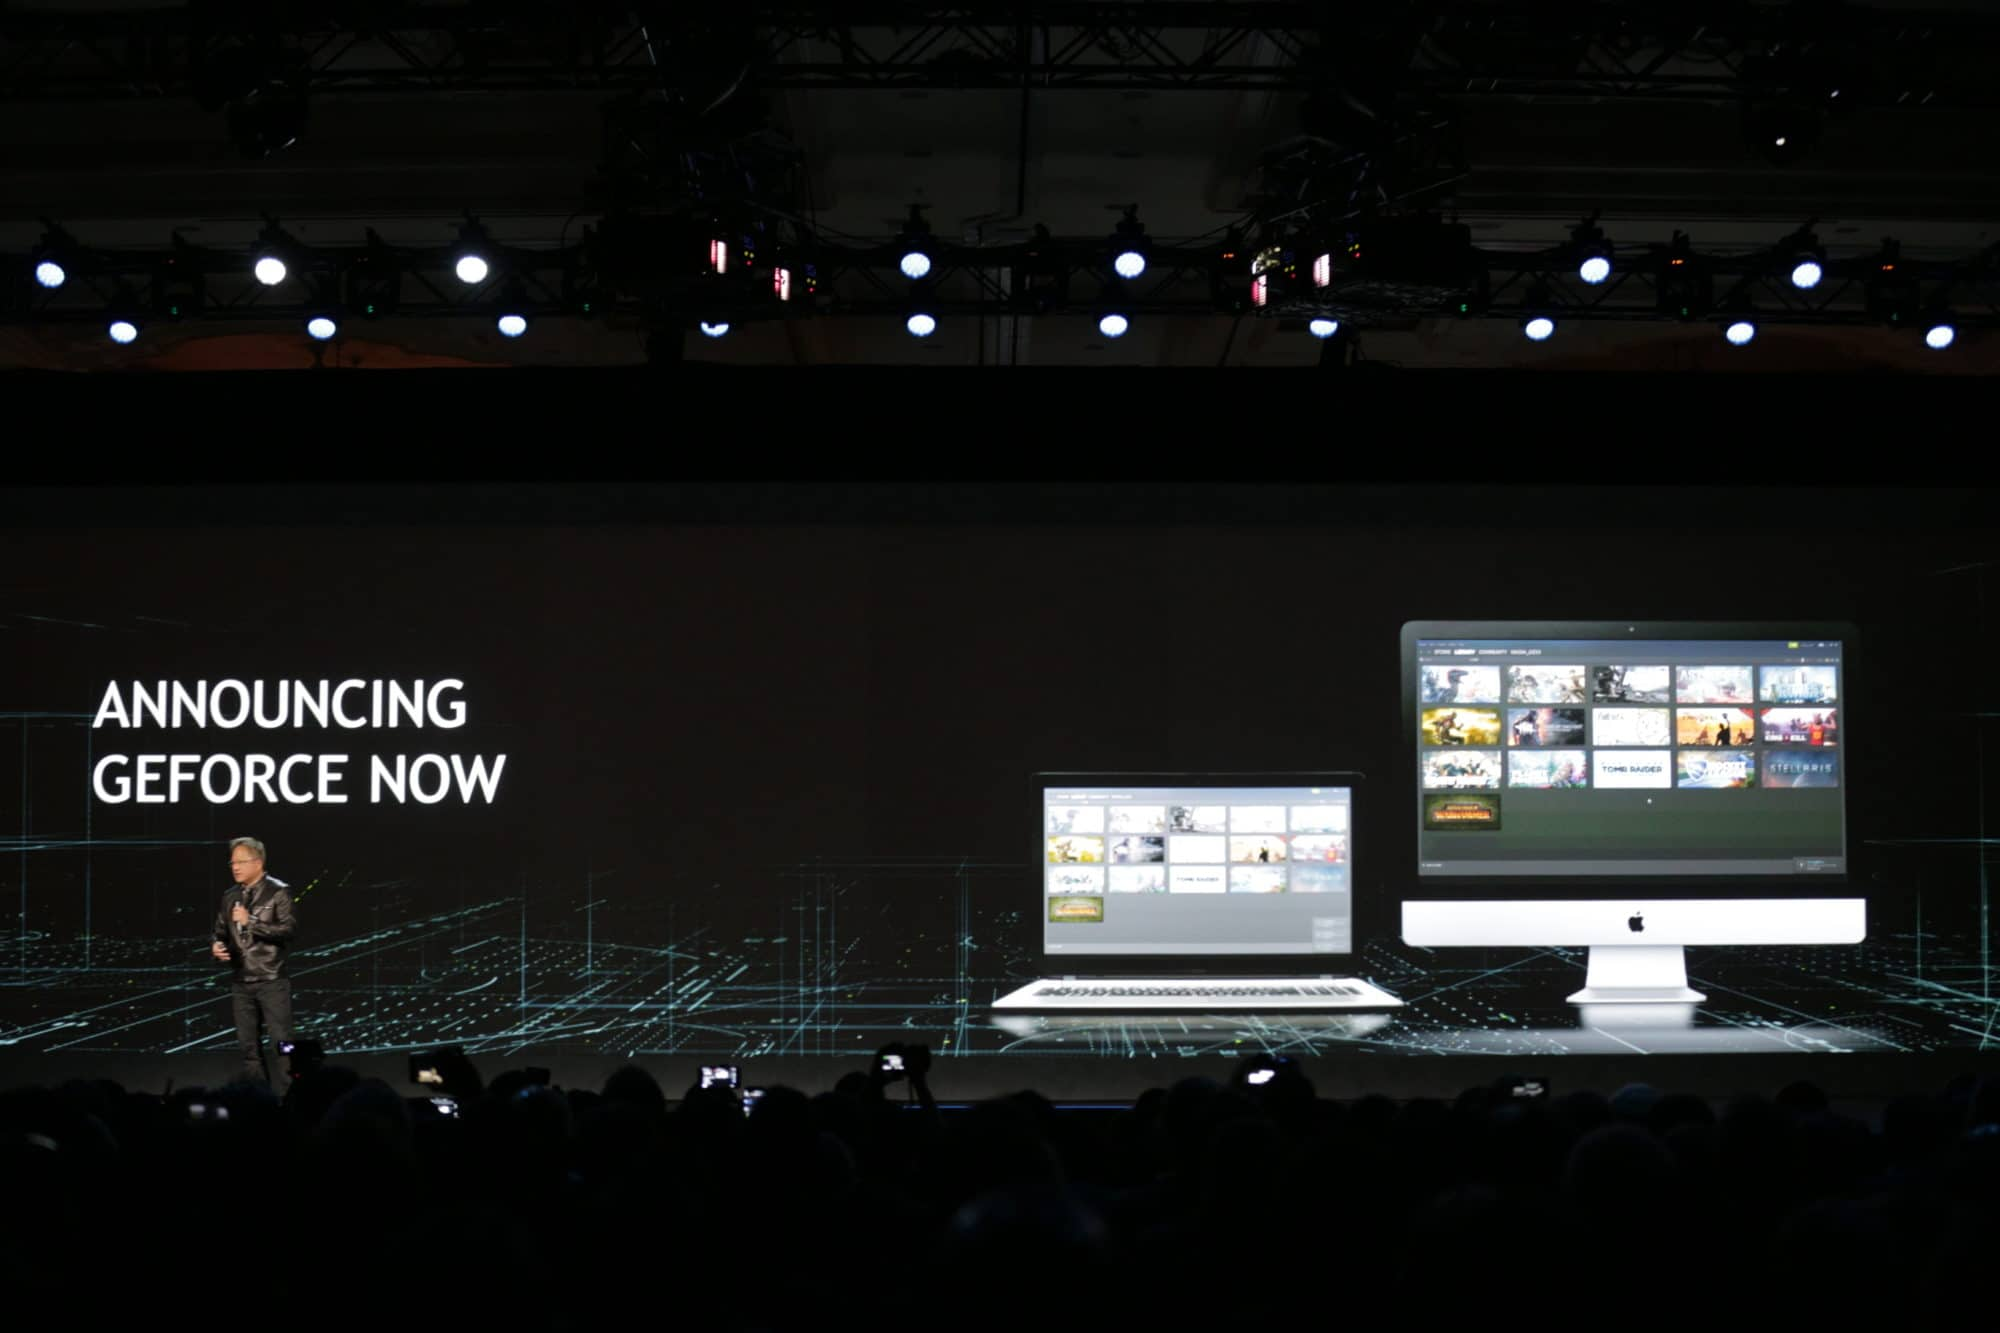 NVIDIA CEO Jen-Hsun Huang unveils GeForce Now service